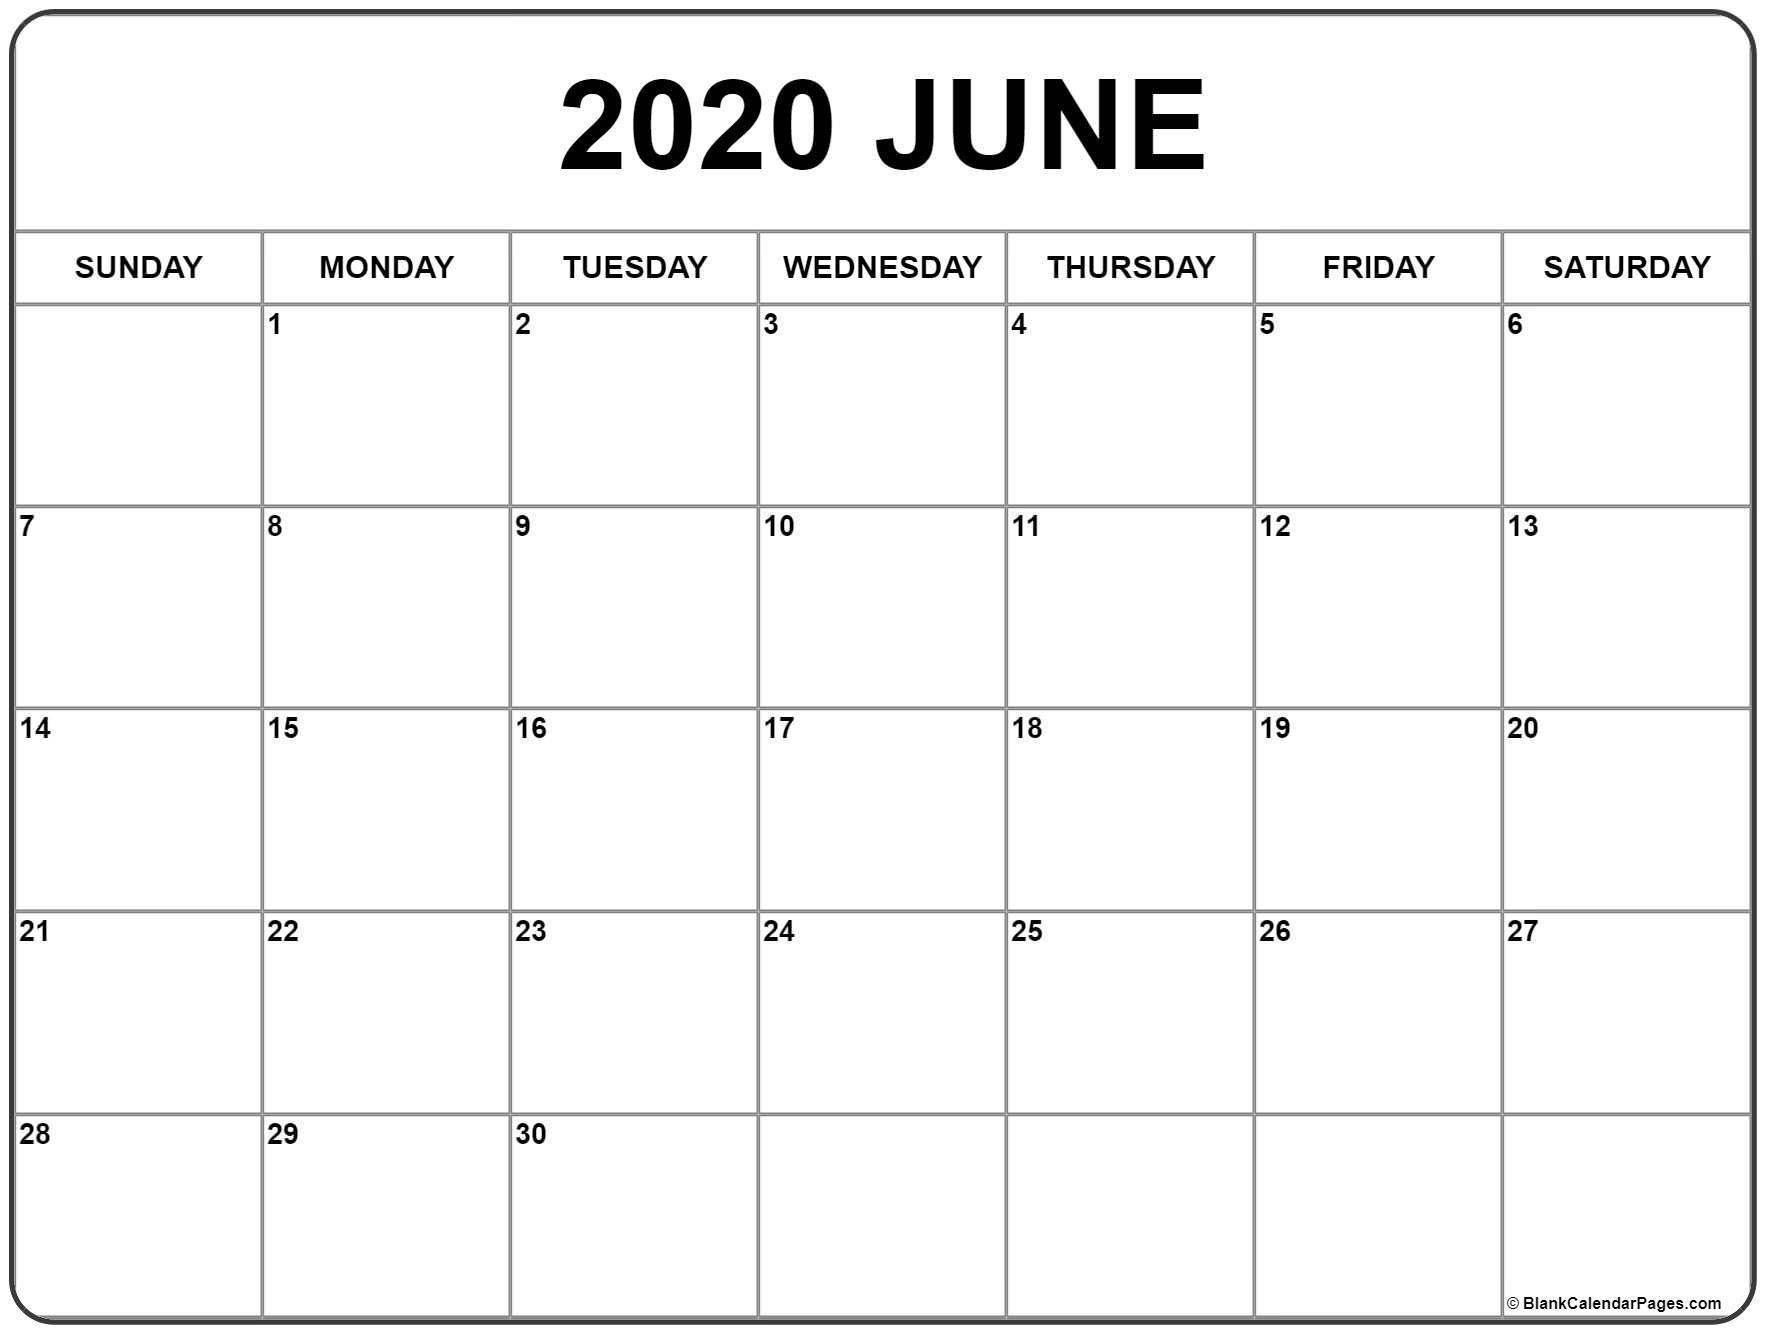 June 2020 Calendar | Free Printable Monthly Calendars  Calendar Print Off